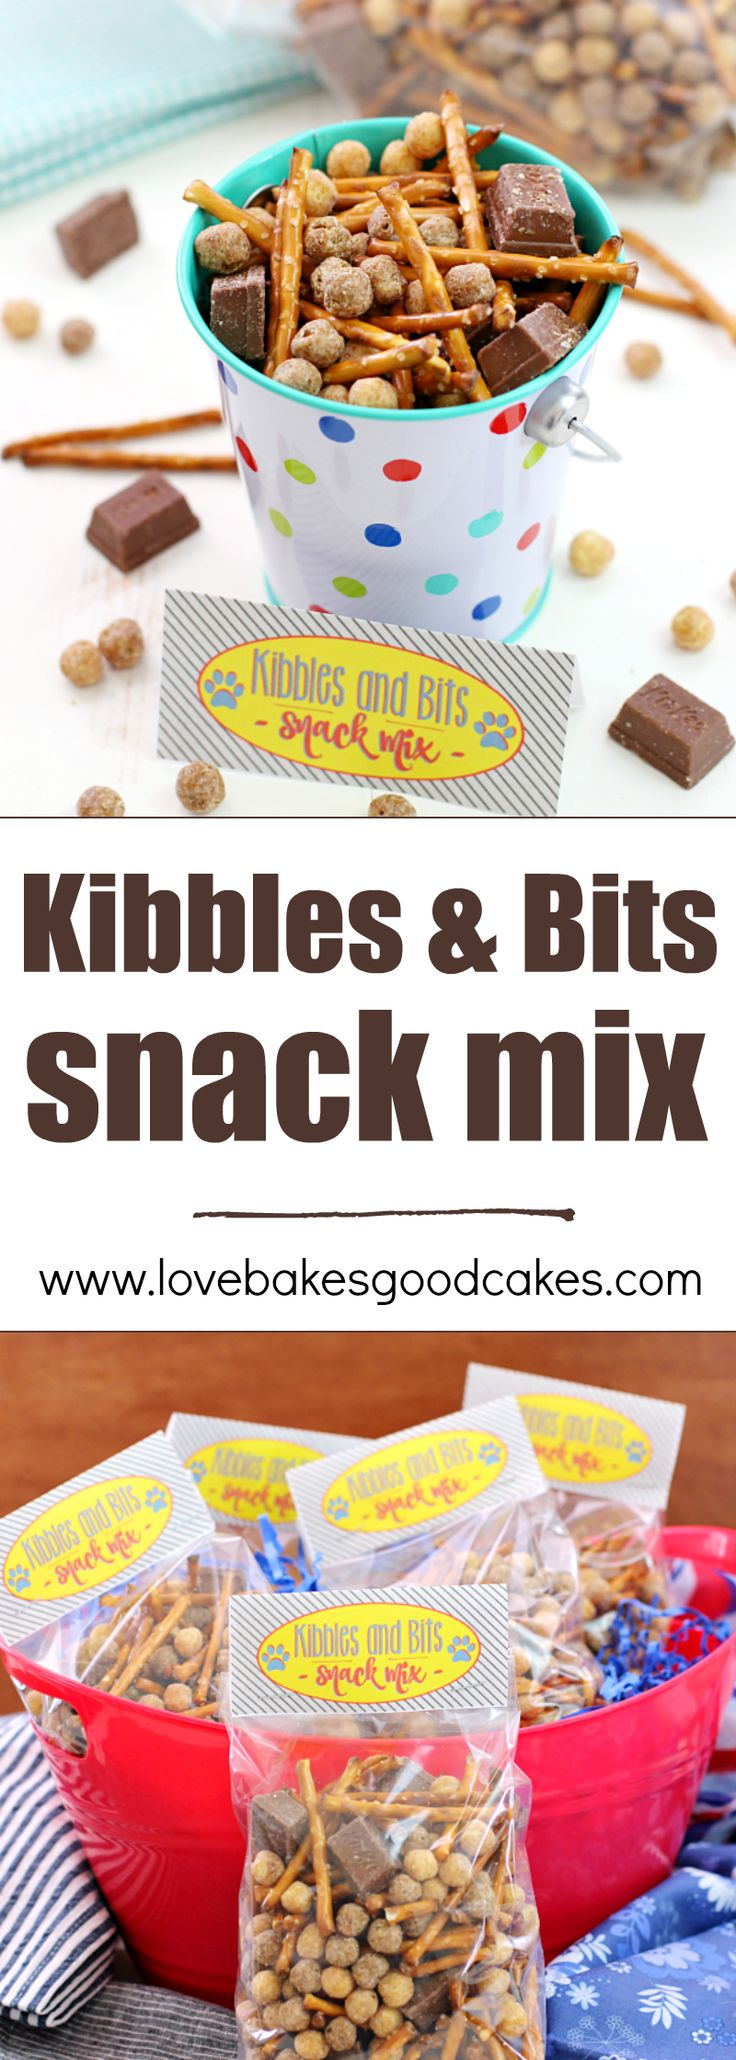 Enjoy watching the new The Secret Life of Pets movie with this easy to make Kibbles & Bits Snack Mix with a FREE Printable! Great for any pet or animal themed parties, too!: